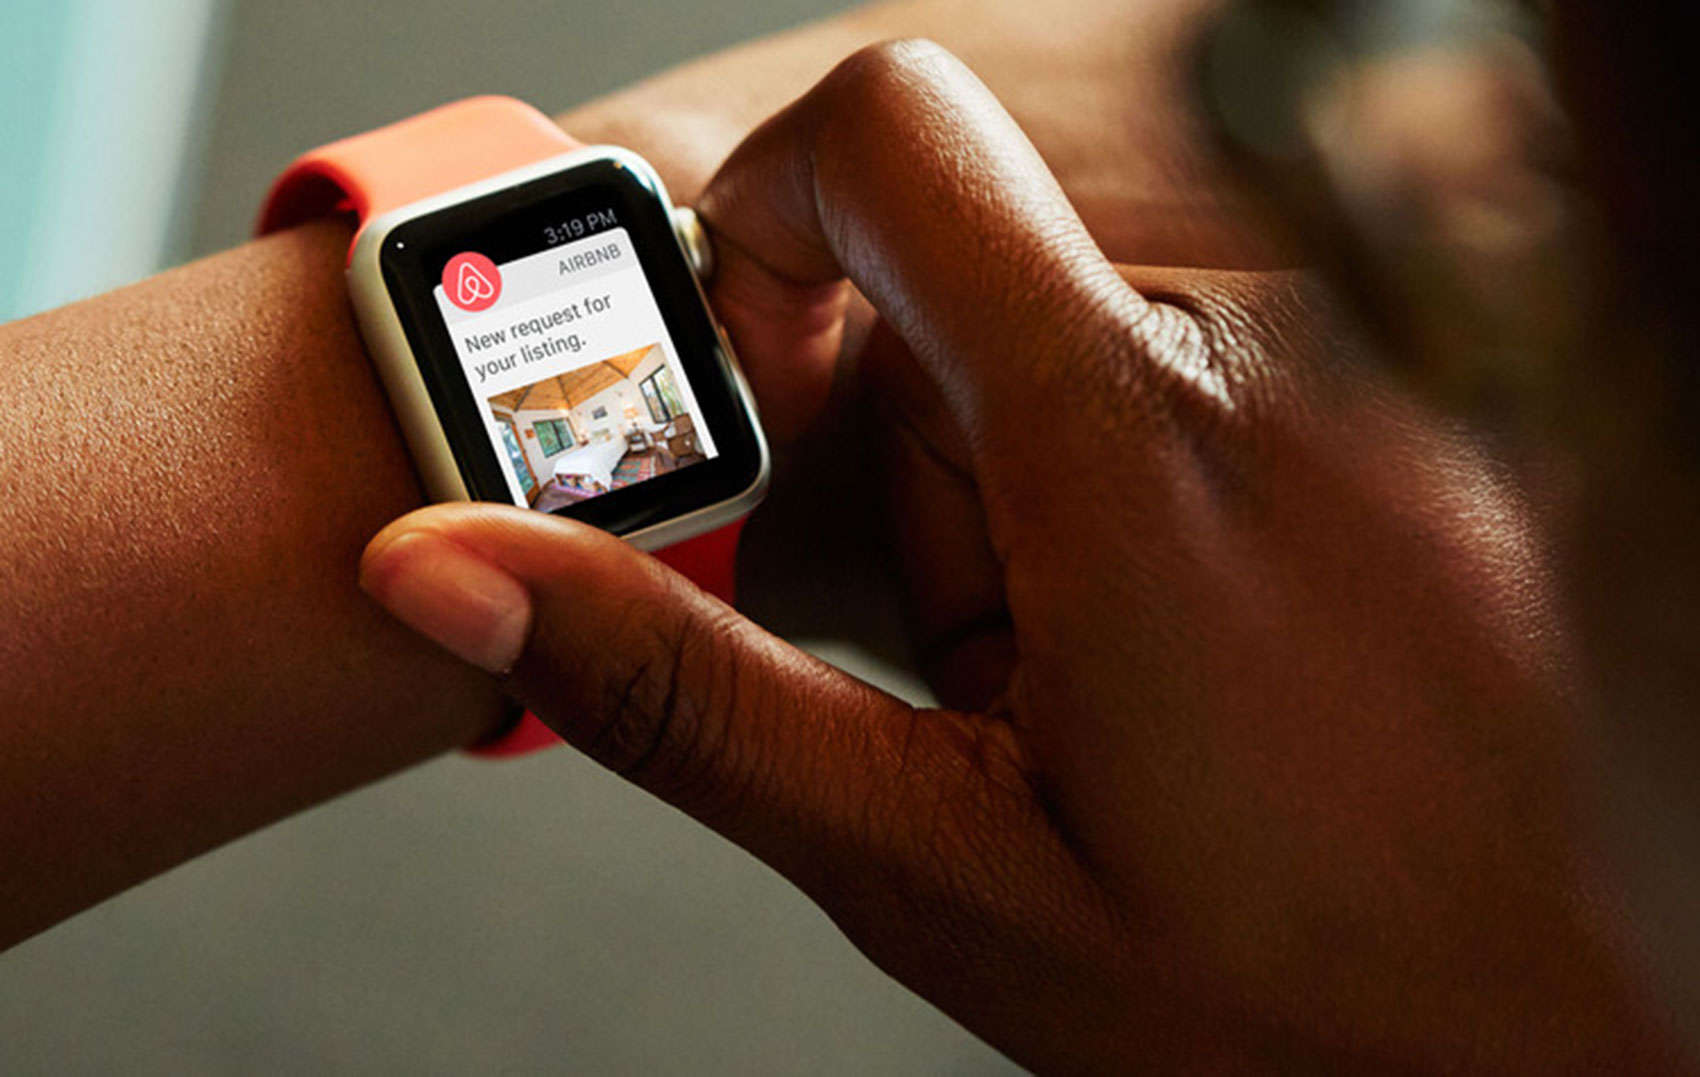 The new Airbnb app for Apple Watch simplifies communication between hosts and guests.